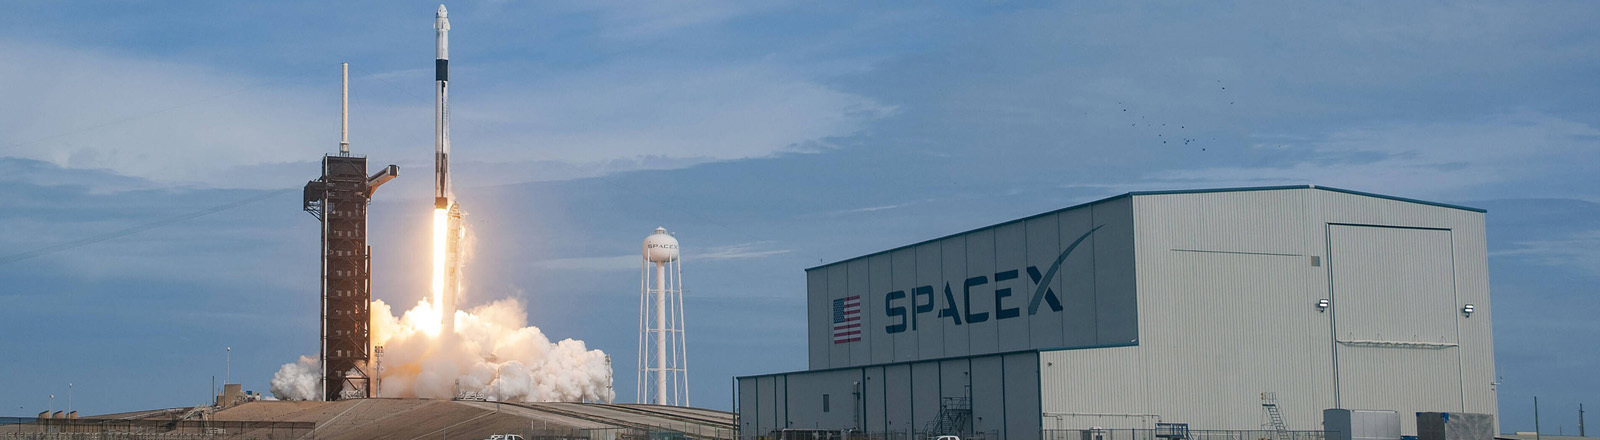 SpaceX im NASA Kennedy Space Center in Florida